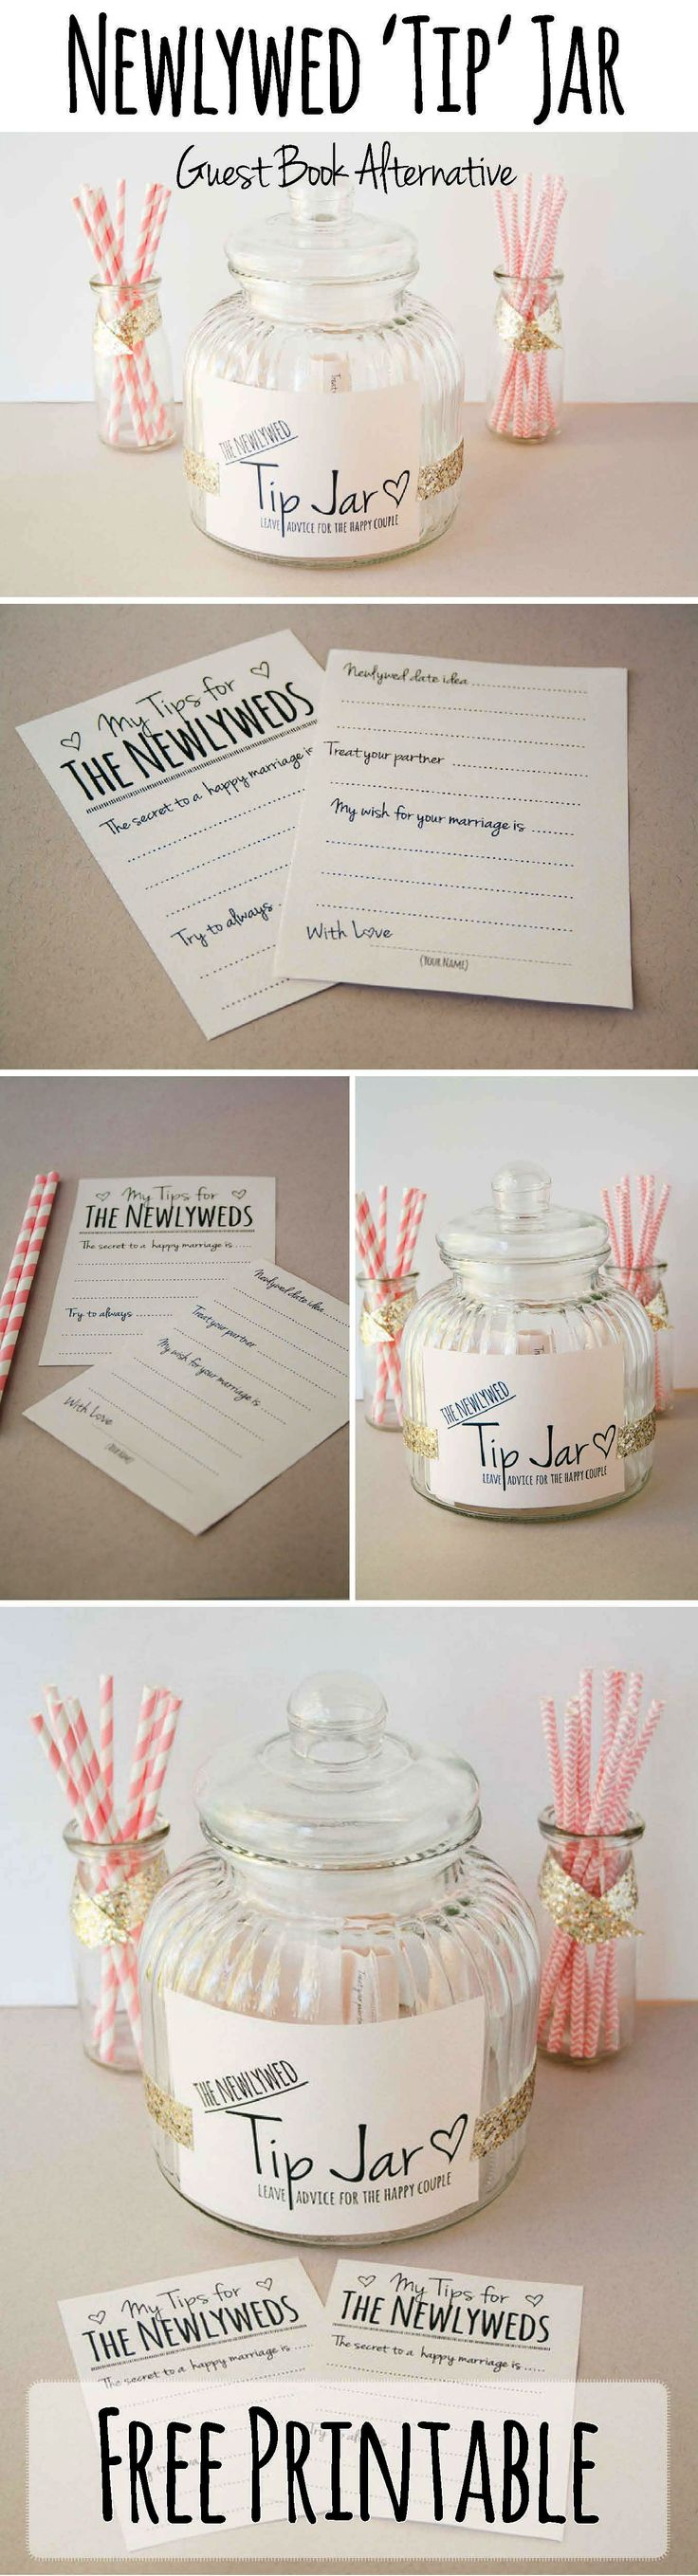 Newly Wed Tip Jar Heres How To Make This Cute